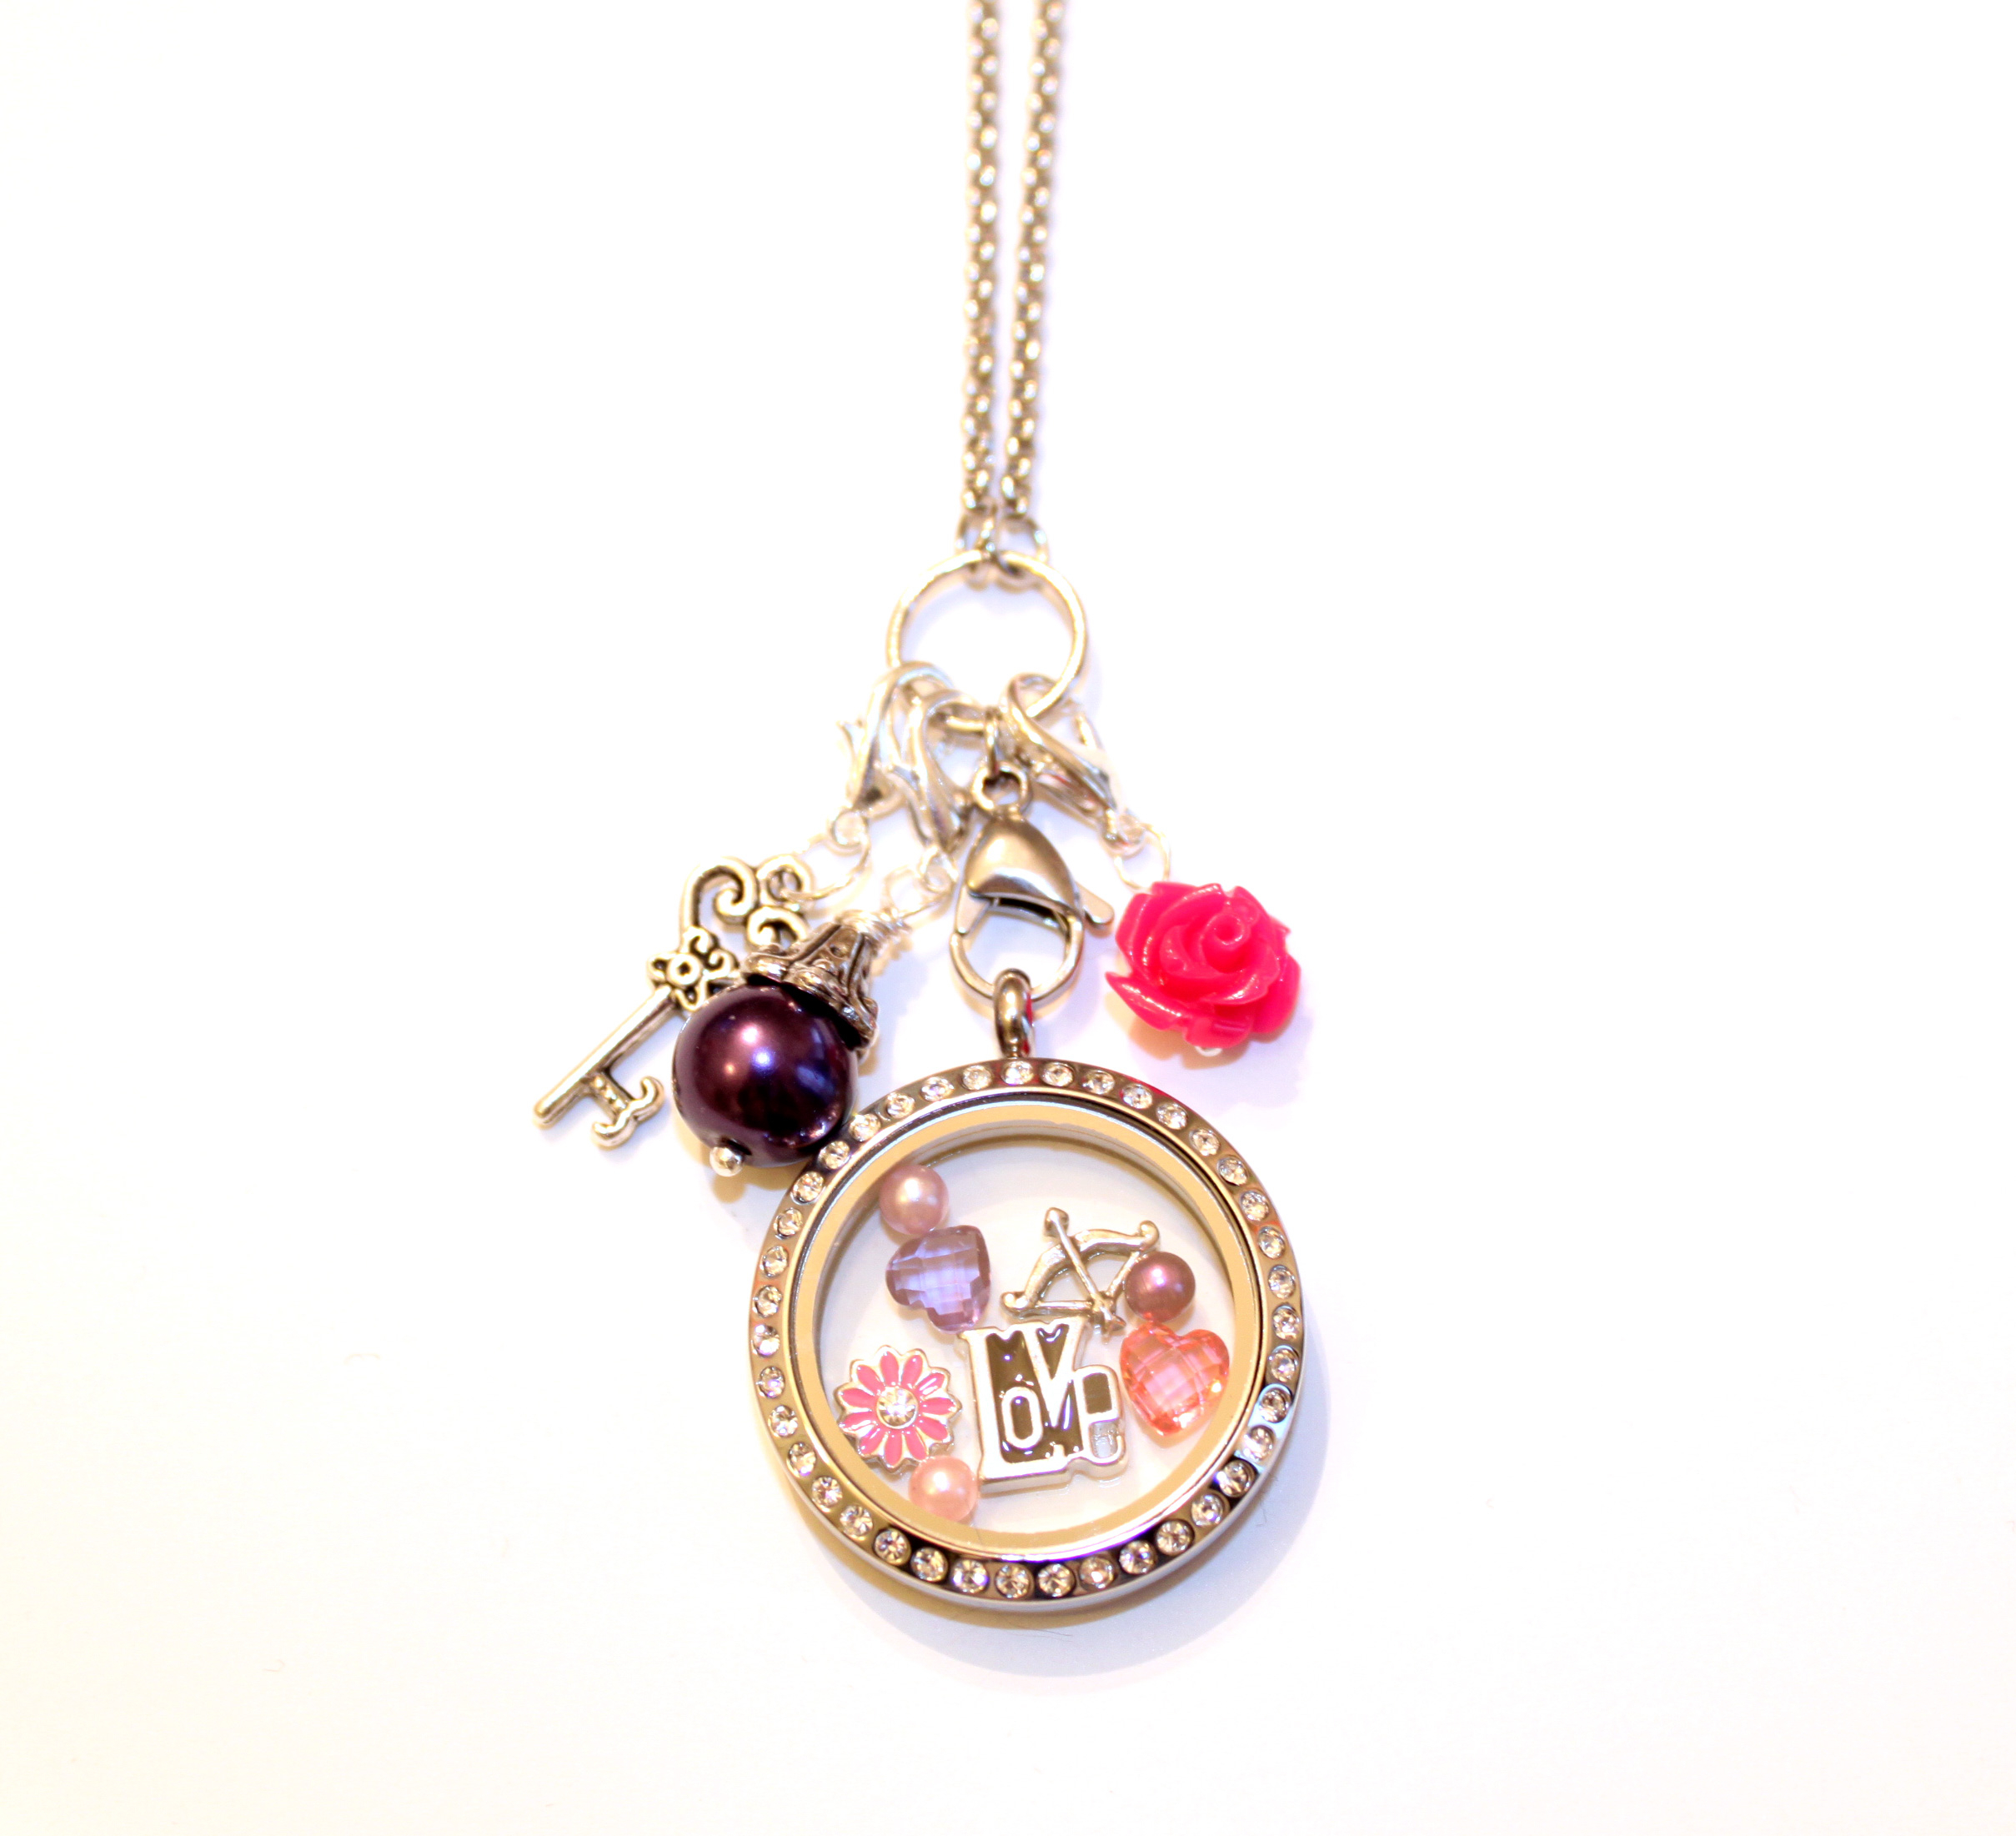 Cupid's Arrow Valentine's Day Floating Locket And Charm Collection Throughout Most Recent Arrow Of Cupid Dangle Charm Necklaces (View 8 of 25)